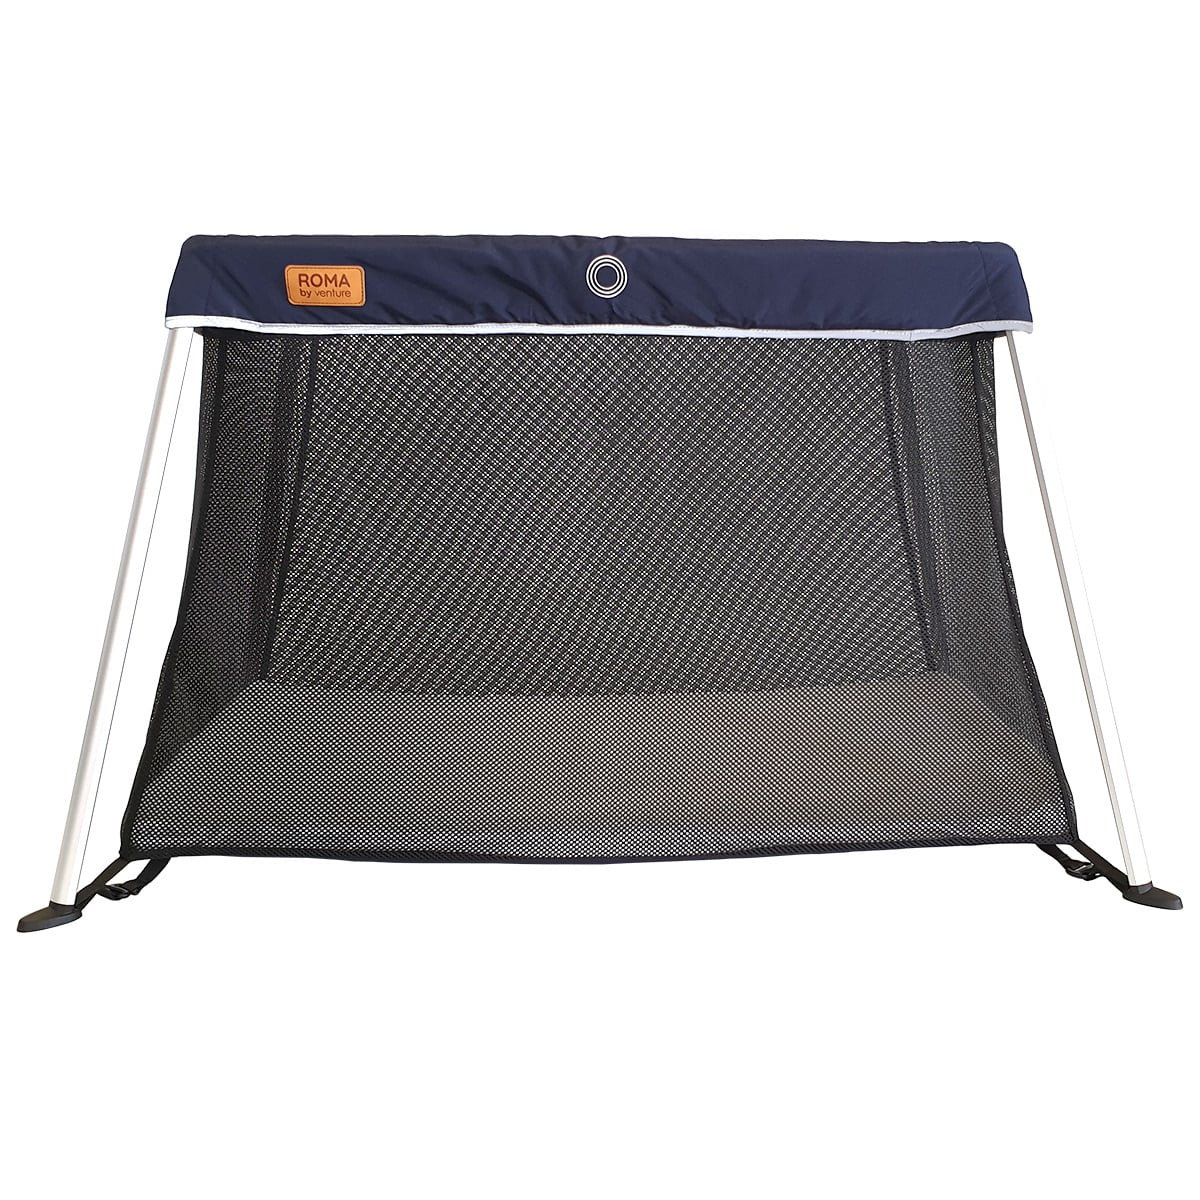 The Roma is a lightweight and compacy travel cot designed for life on the go.